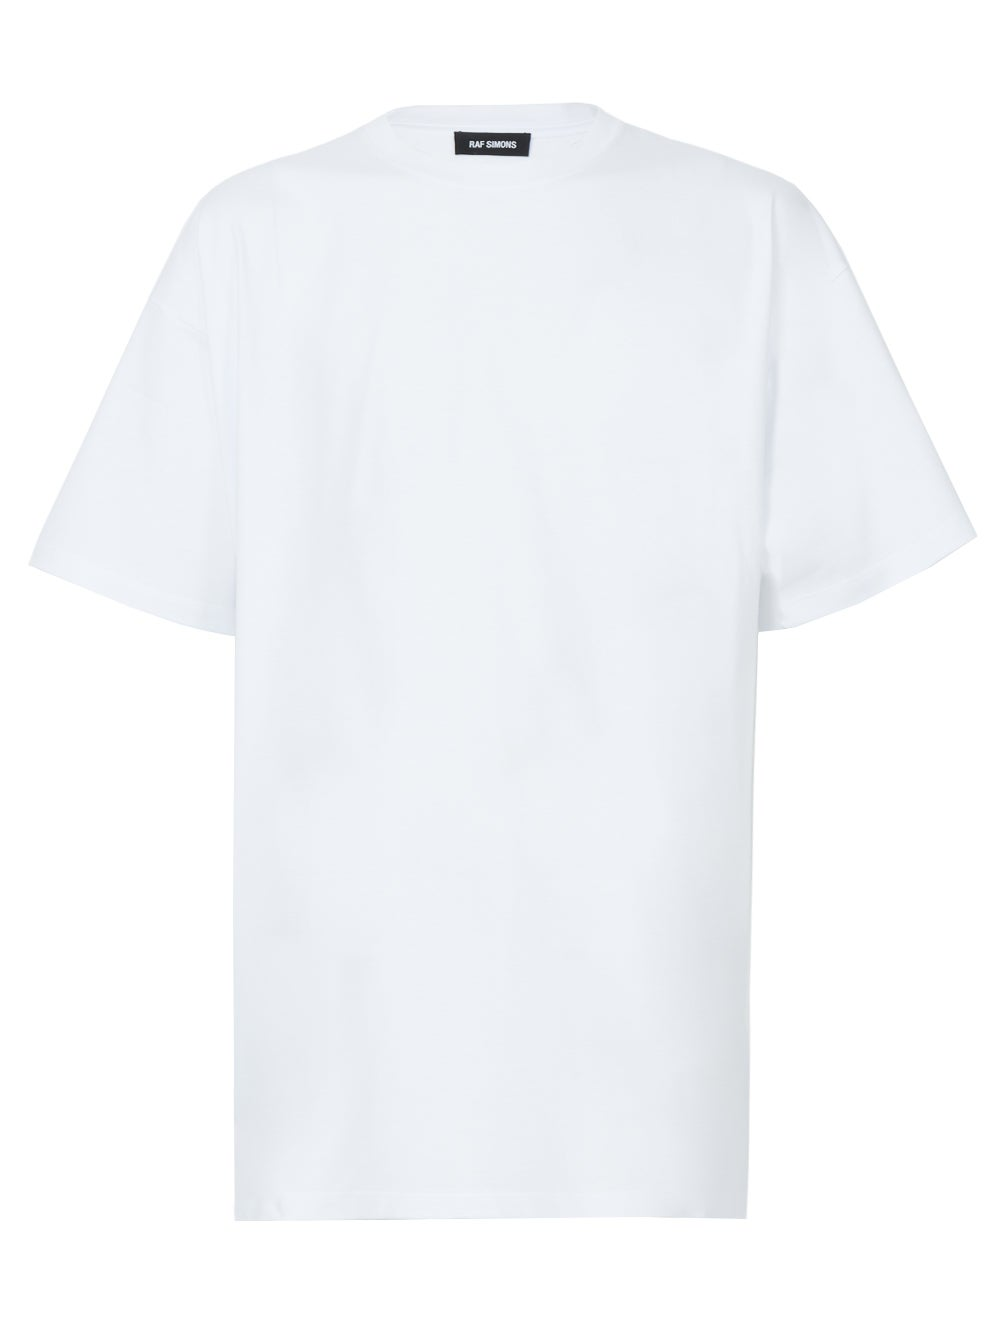 White Exclusive NY T-Shirt